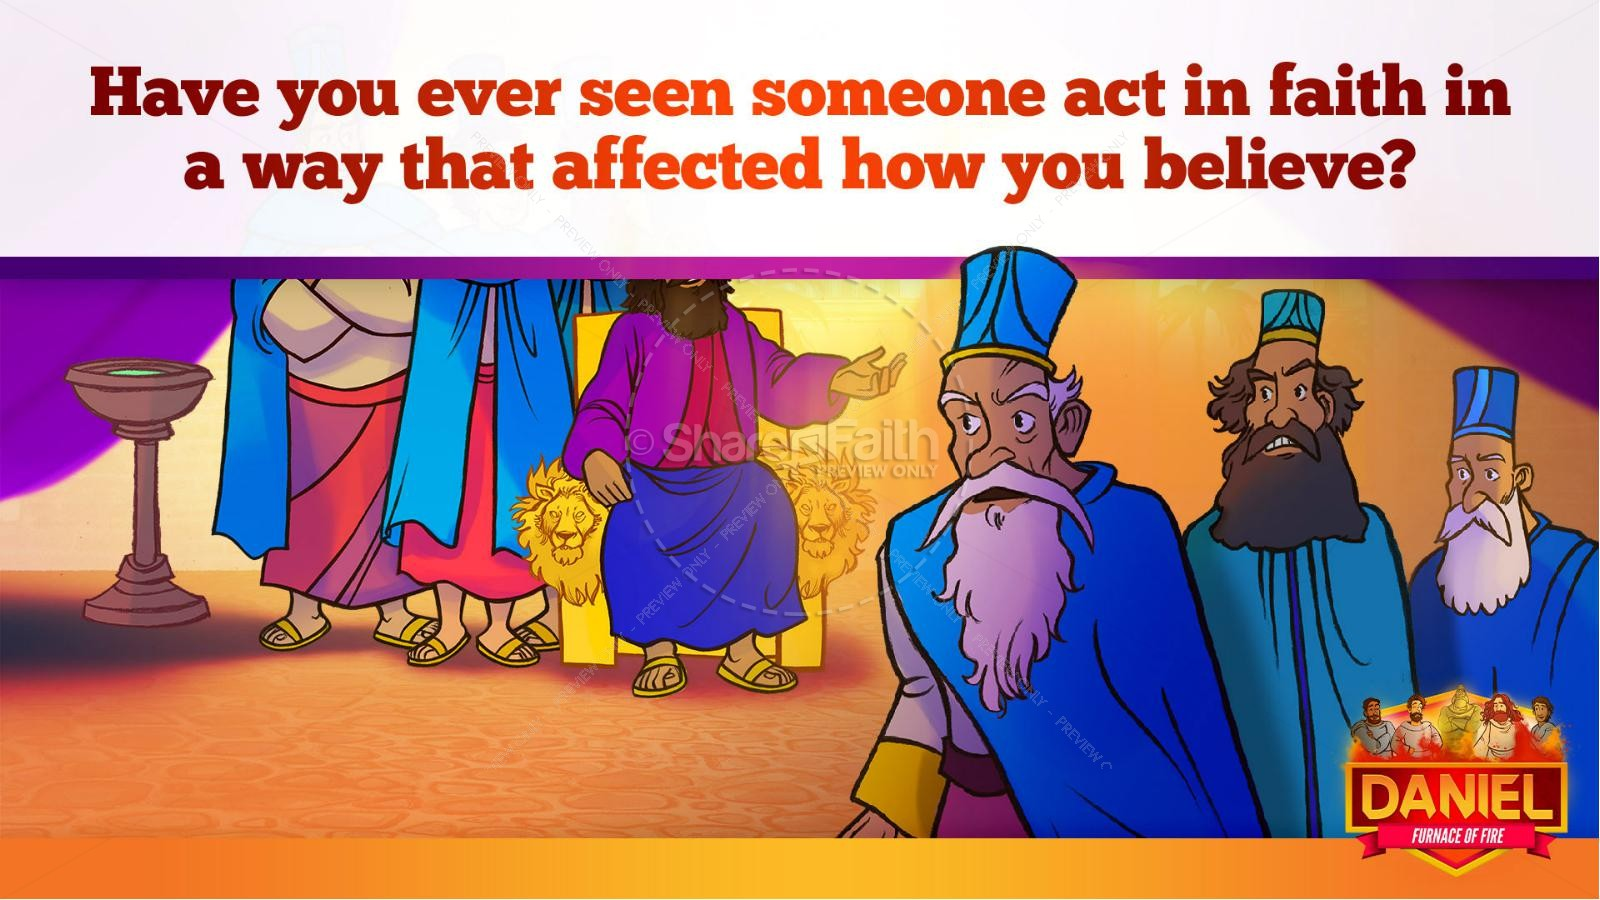 Daniel 3 The Furnace of Fire Kids Bible Story | slide 37